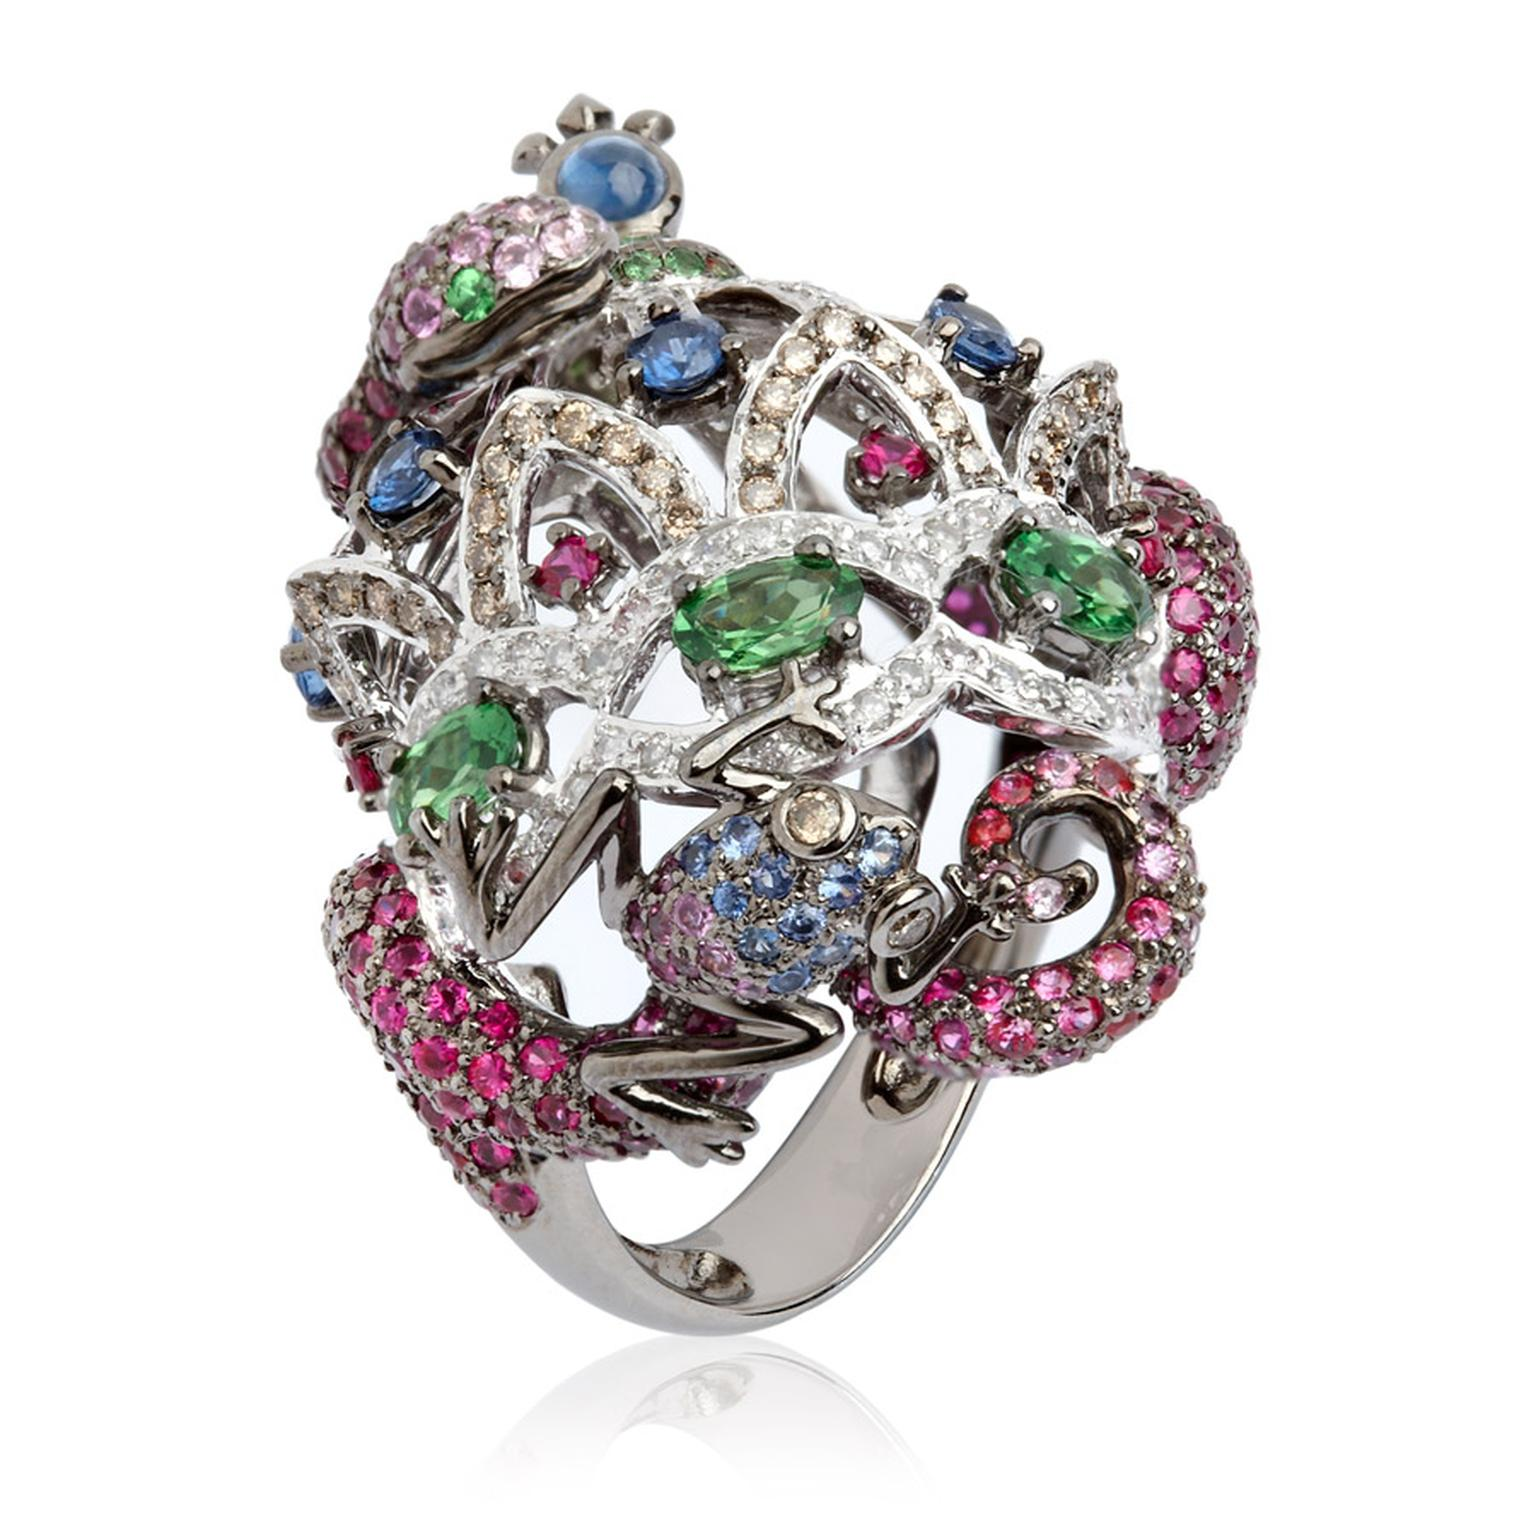 Wendy-Yue-Fantasie--Jubilee-18ct-white-gold-diamond-sapphire-ruby-and-garnet-Serpent-ring-by-Wendy-Yue-for-Annoushka_03.jpg